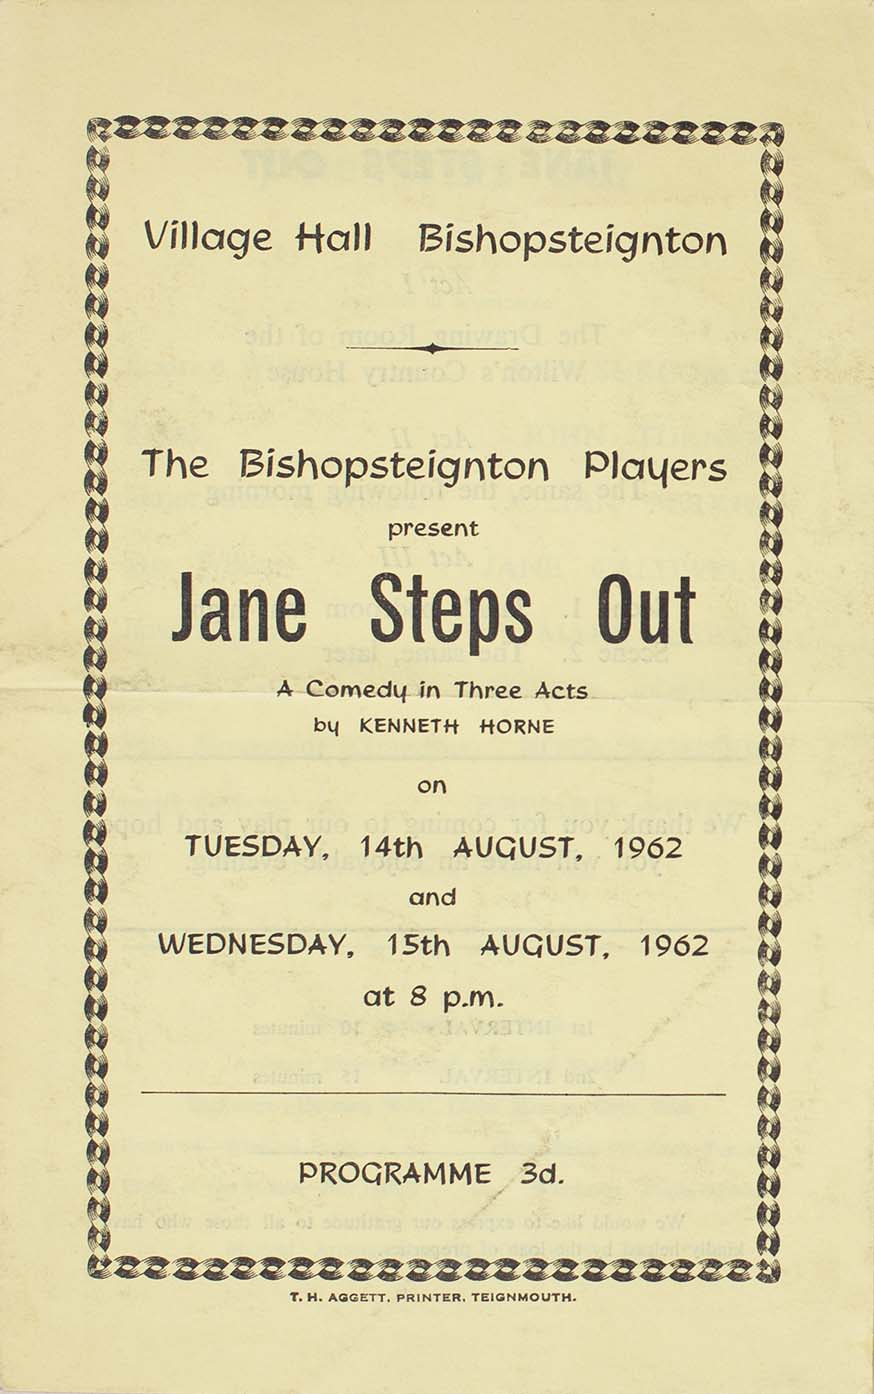 Leaflet to advertise the second programme for this play 'Jane Steps Out' presented by the Bishopsteignton Players August 1962 front